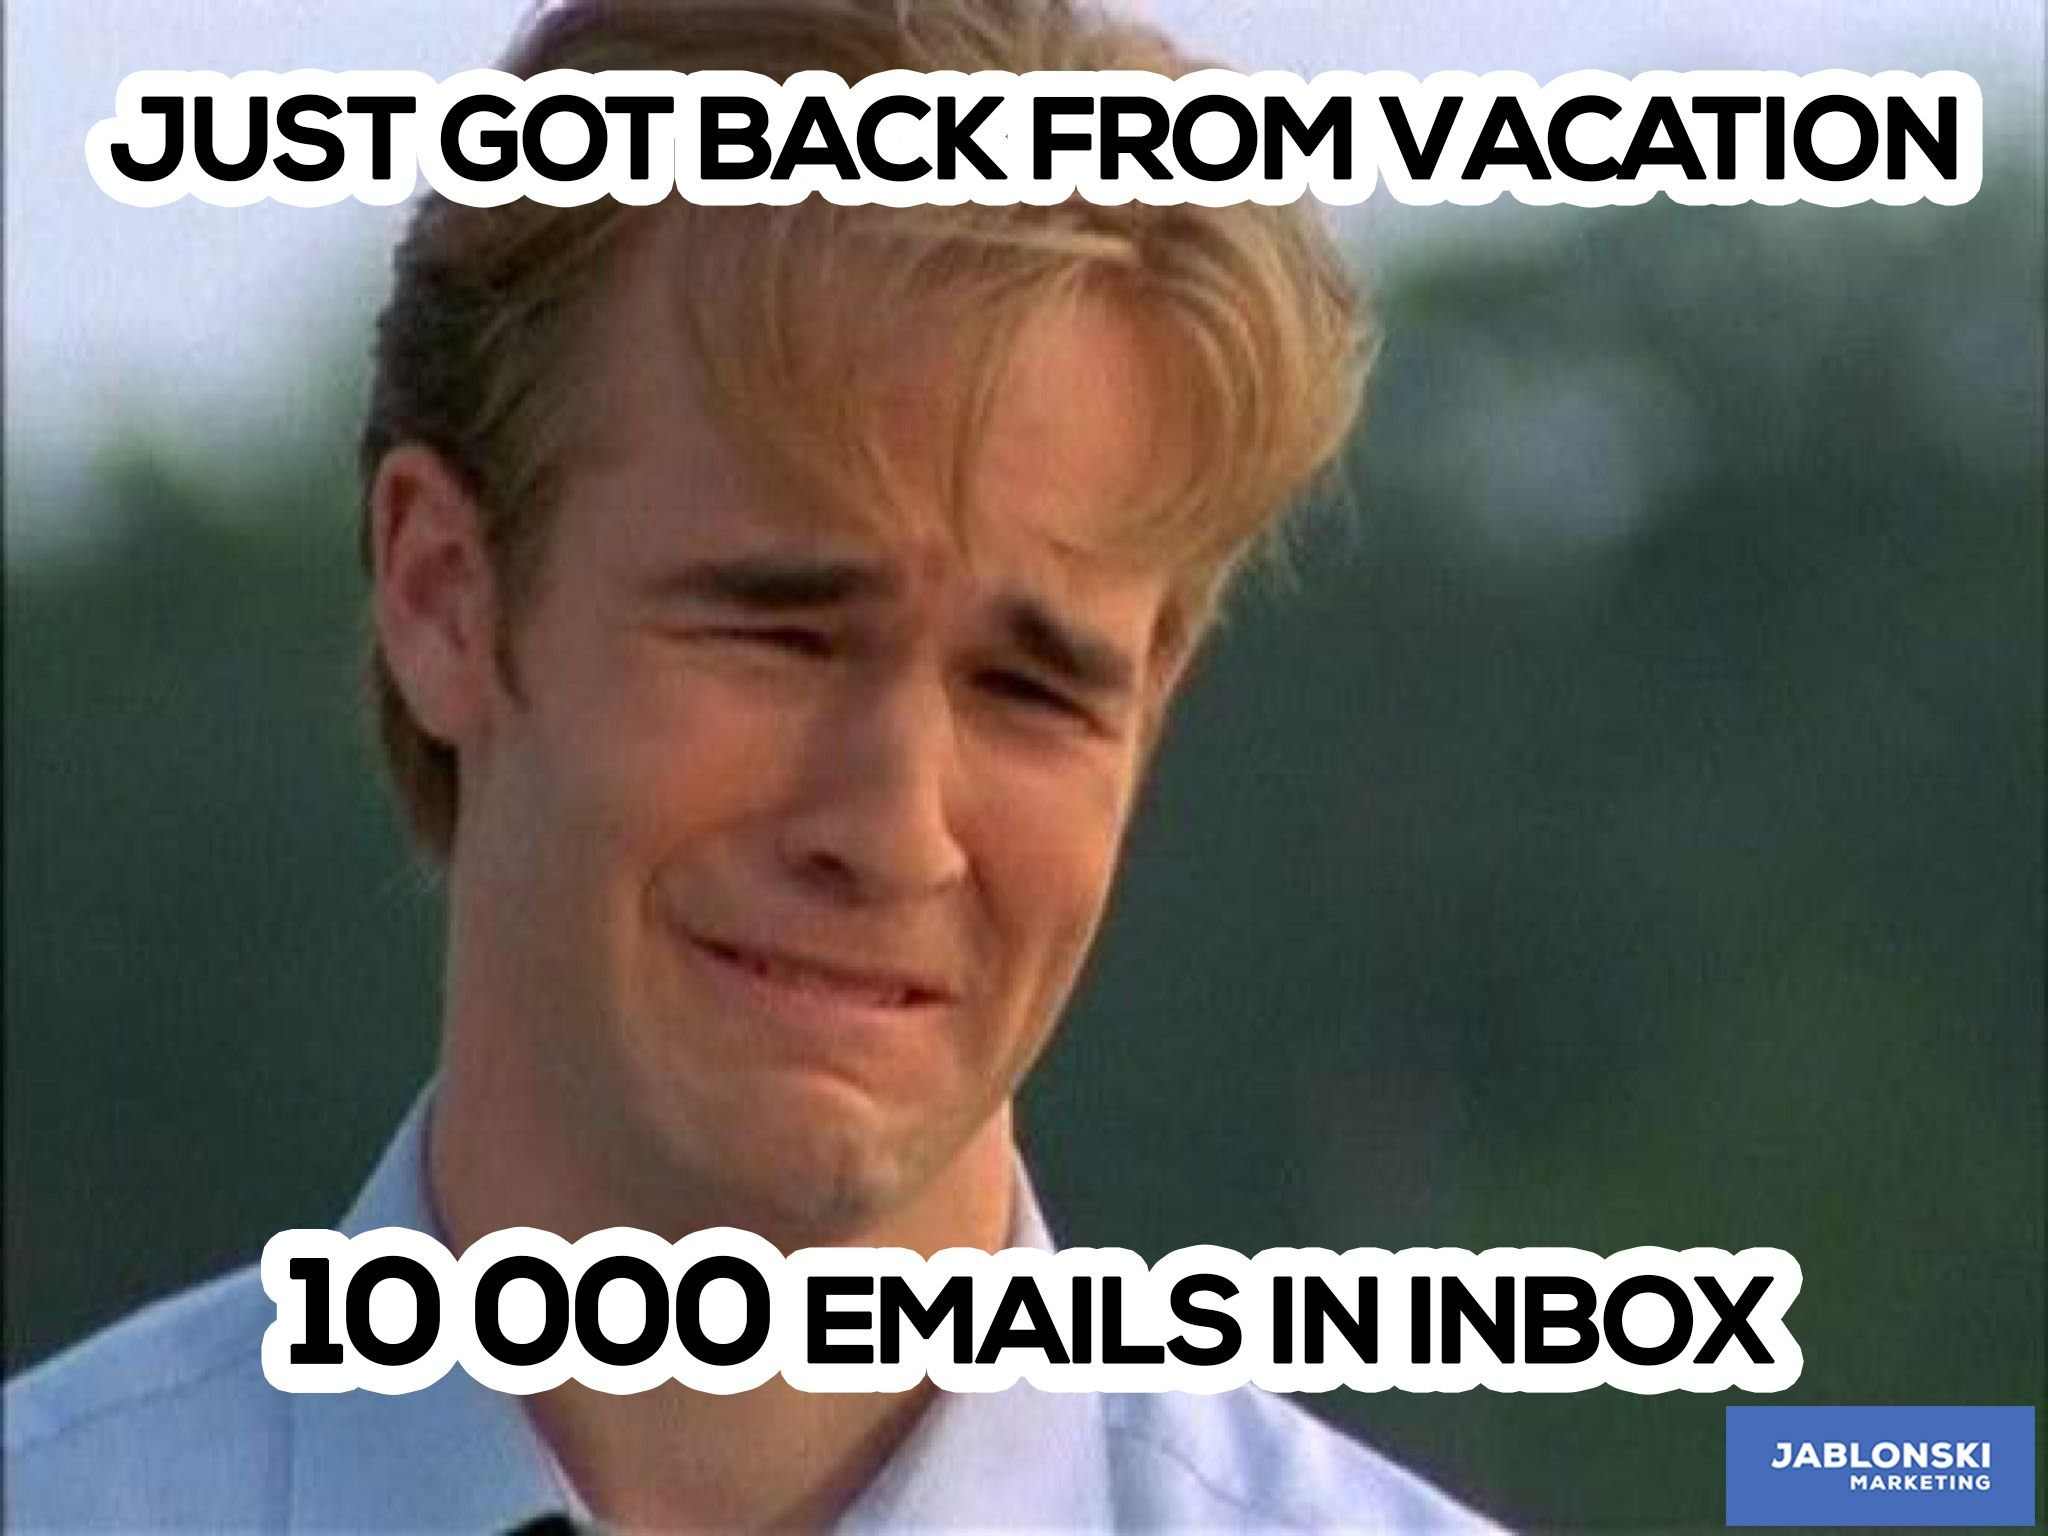 Just got back from vacation 10000 emails in inbox meme workmeme marketing humor funny reality sad gonnaworkhard